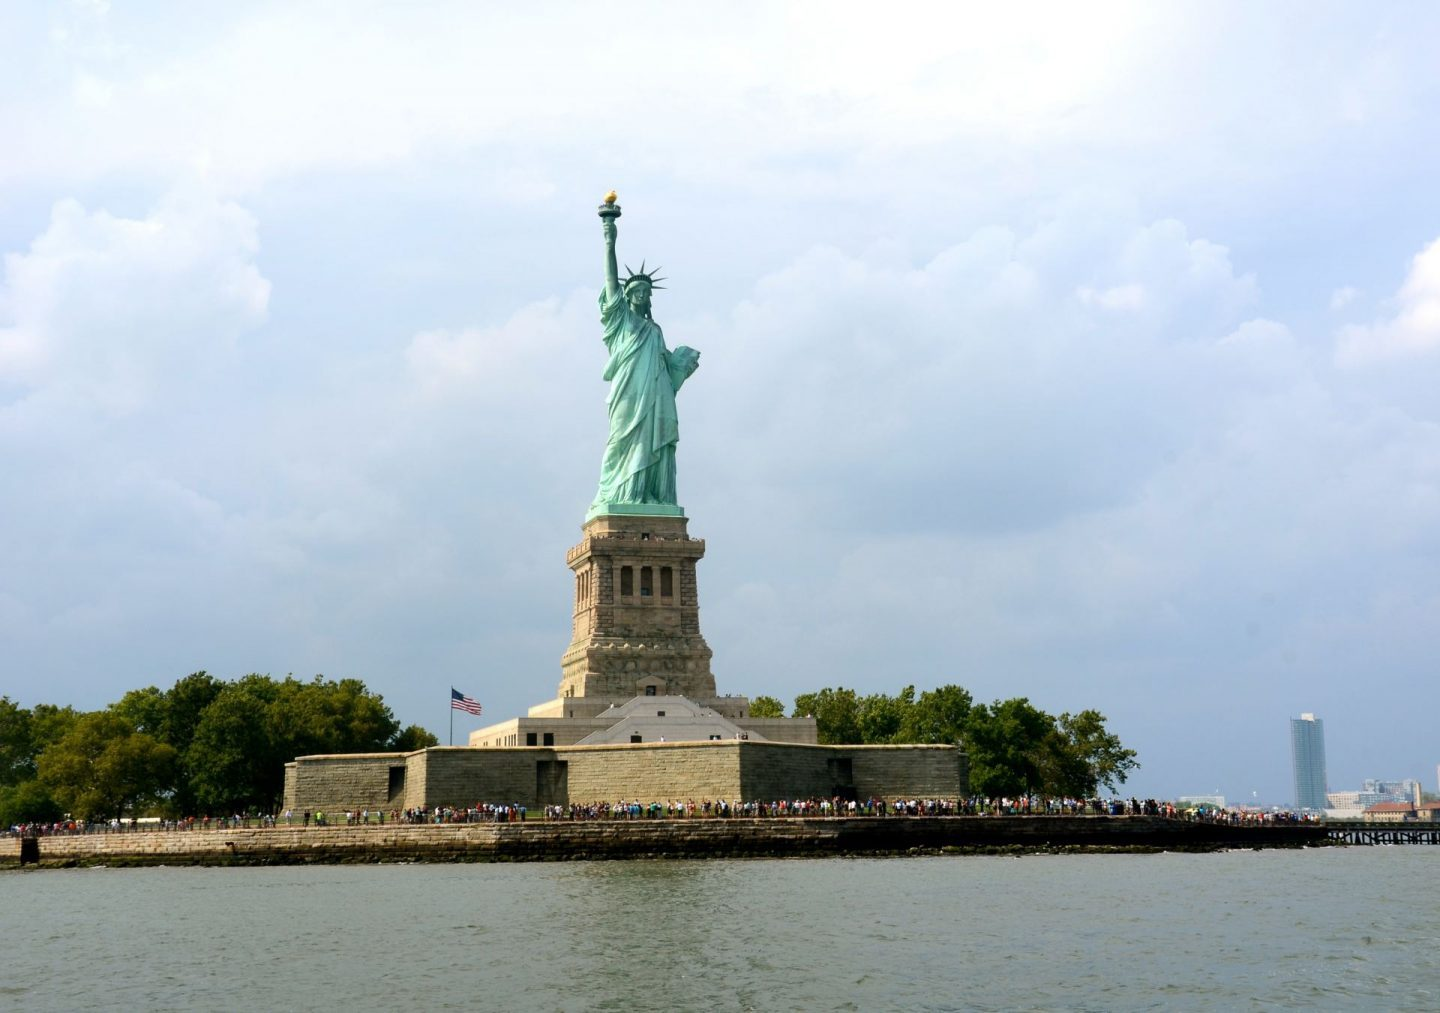 View of the Statue of Liberty from the New York water taxi.